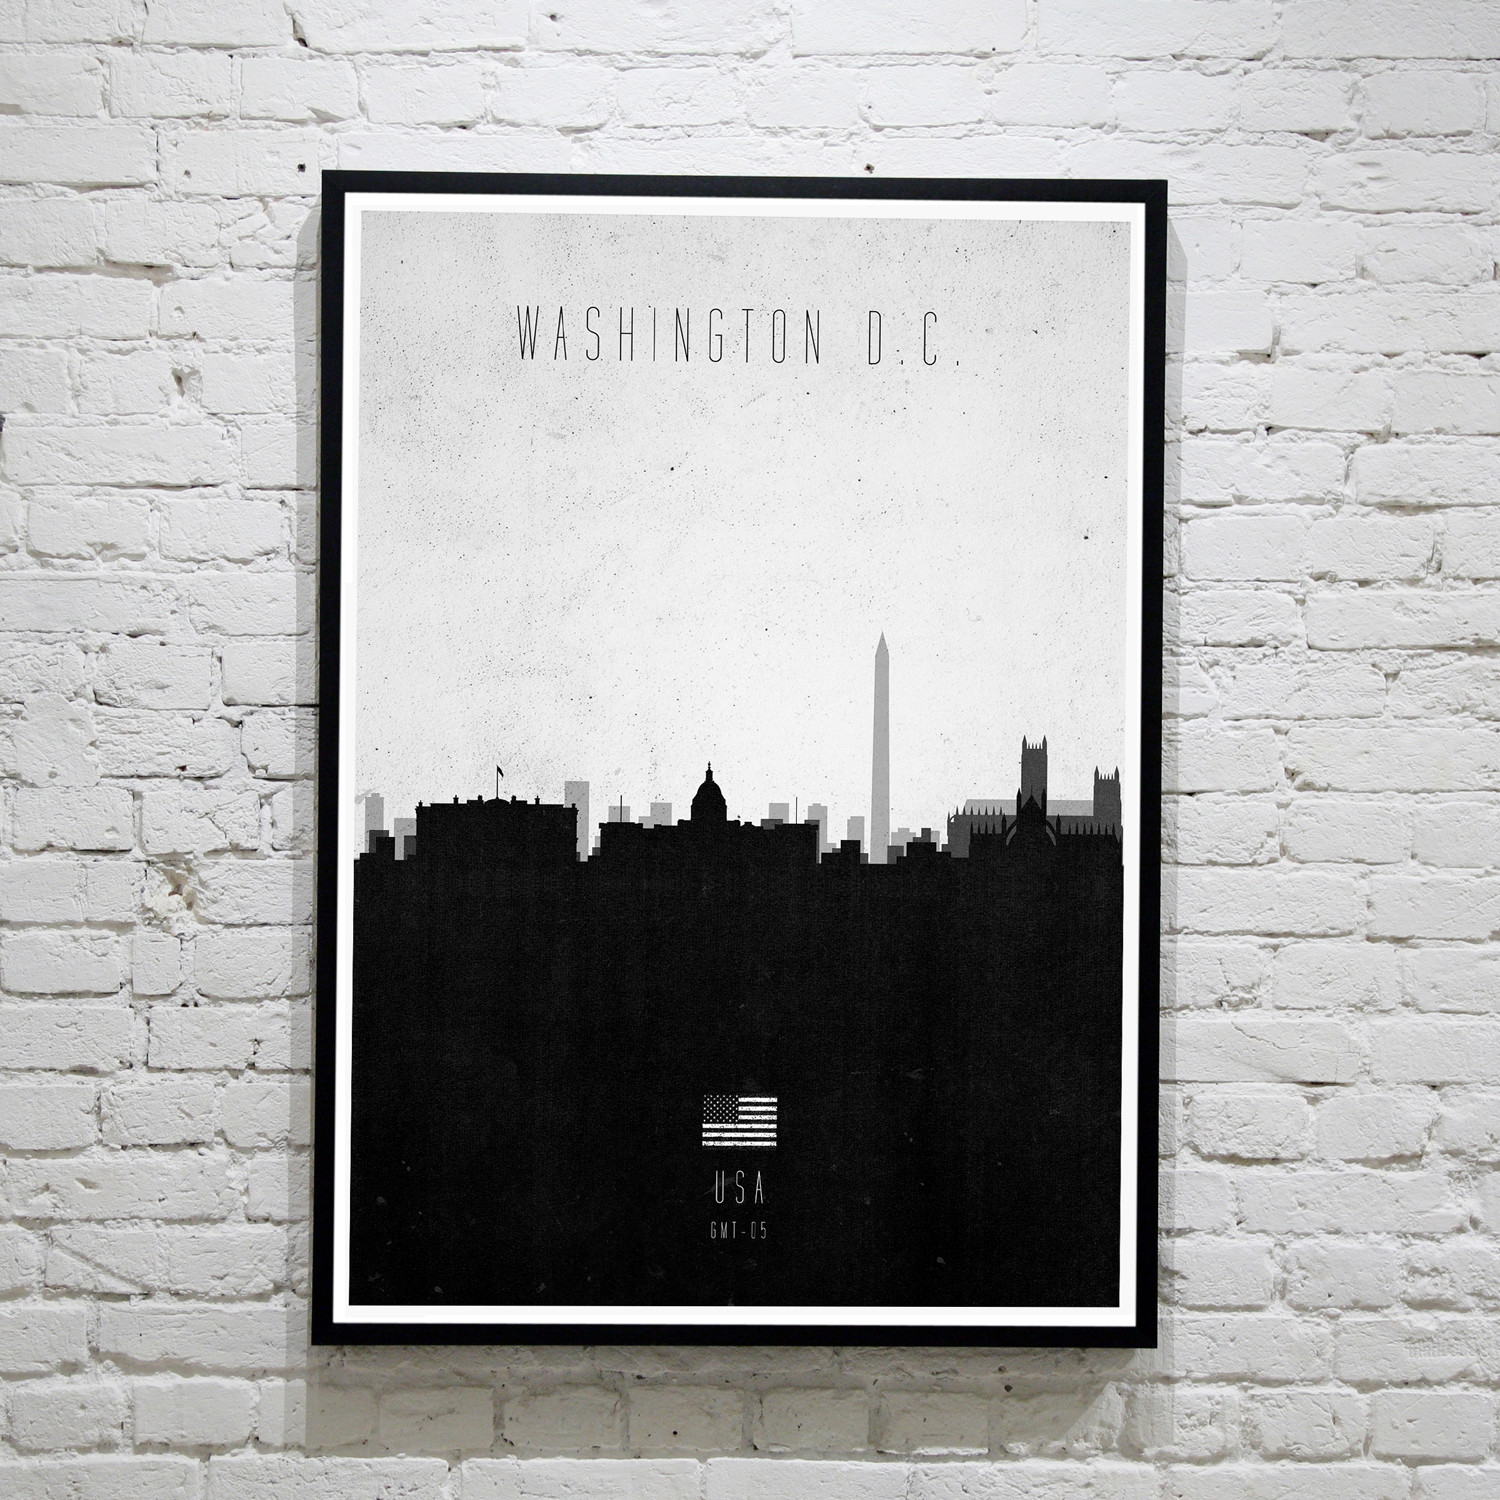 Washington D.C. Contemporary Cityscape